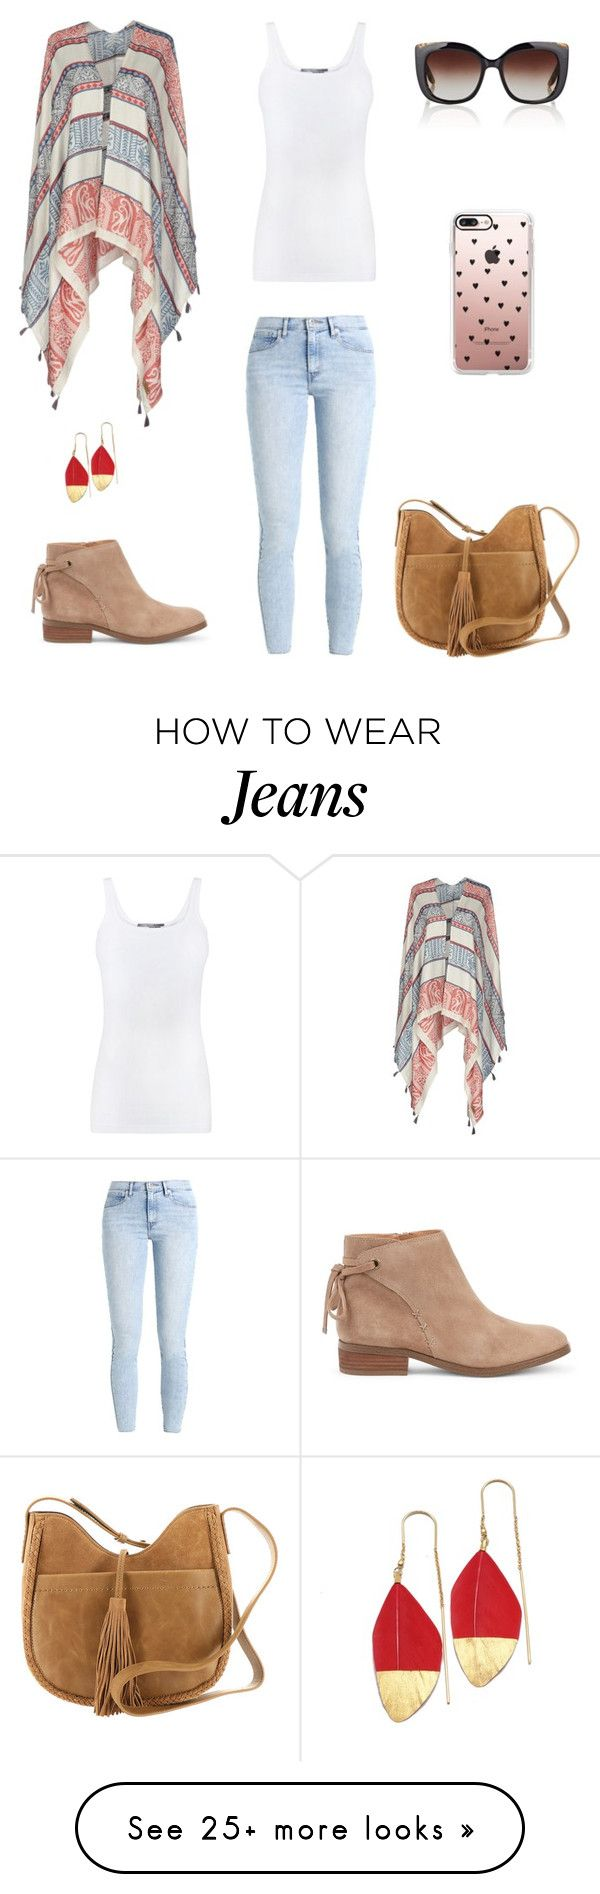 """""""Sans titre #1975"""" by wali-emna on Polyvore featuring Pepe Jeans London, Vince, Levi's, Sole Society, Lucky Brand, Casetify and Barton Perreira"""